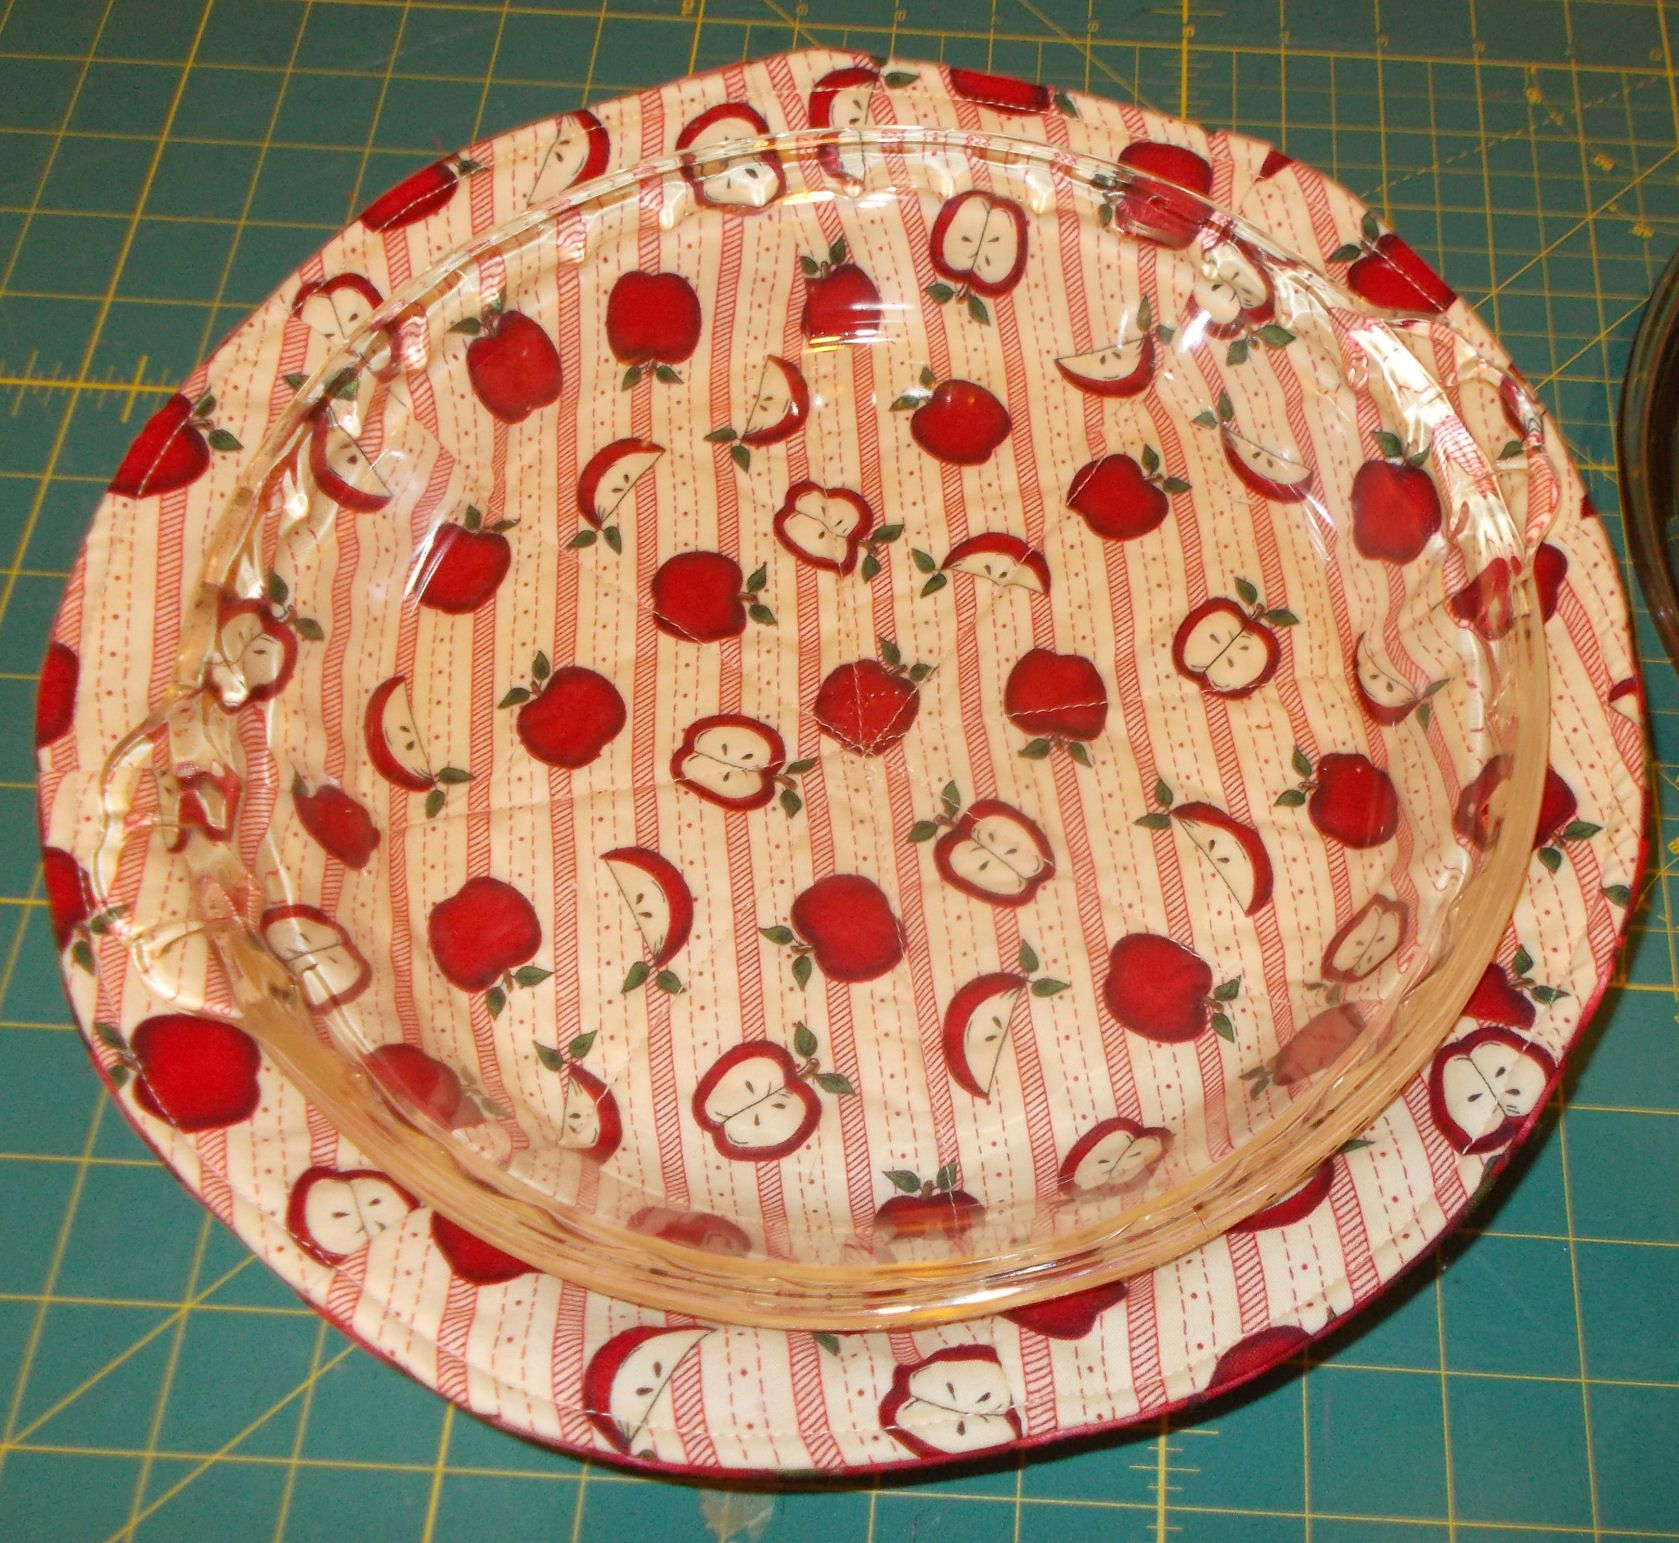 Bowl Pot Holder: Learn How To Sew Pot Holders In A Variety Of Shapes